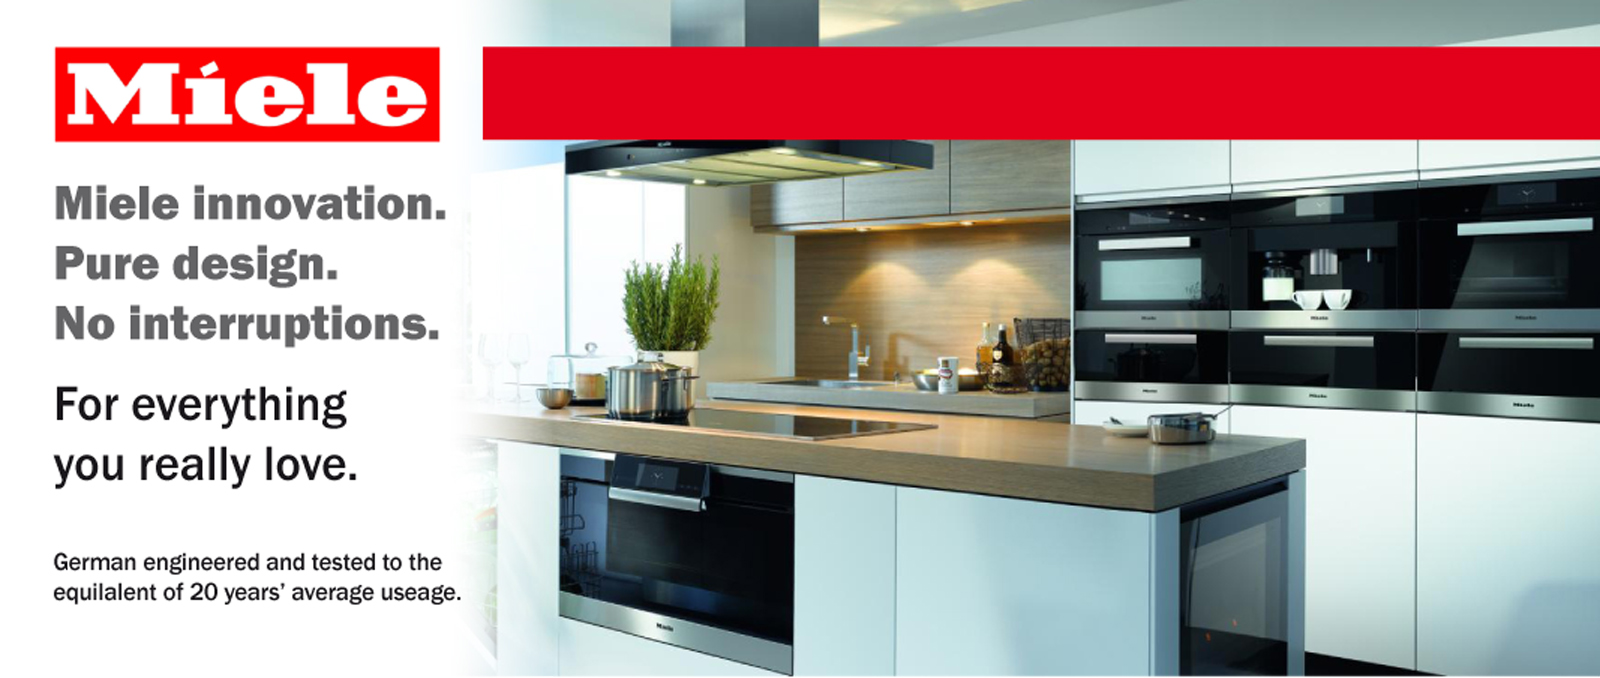 Website Miele Slider